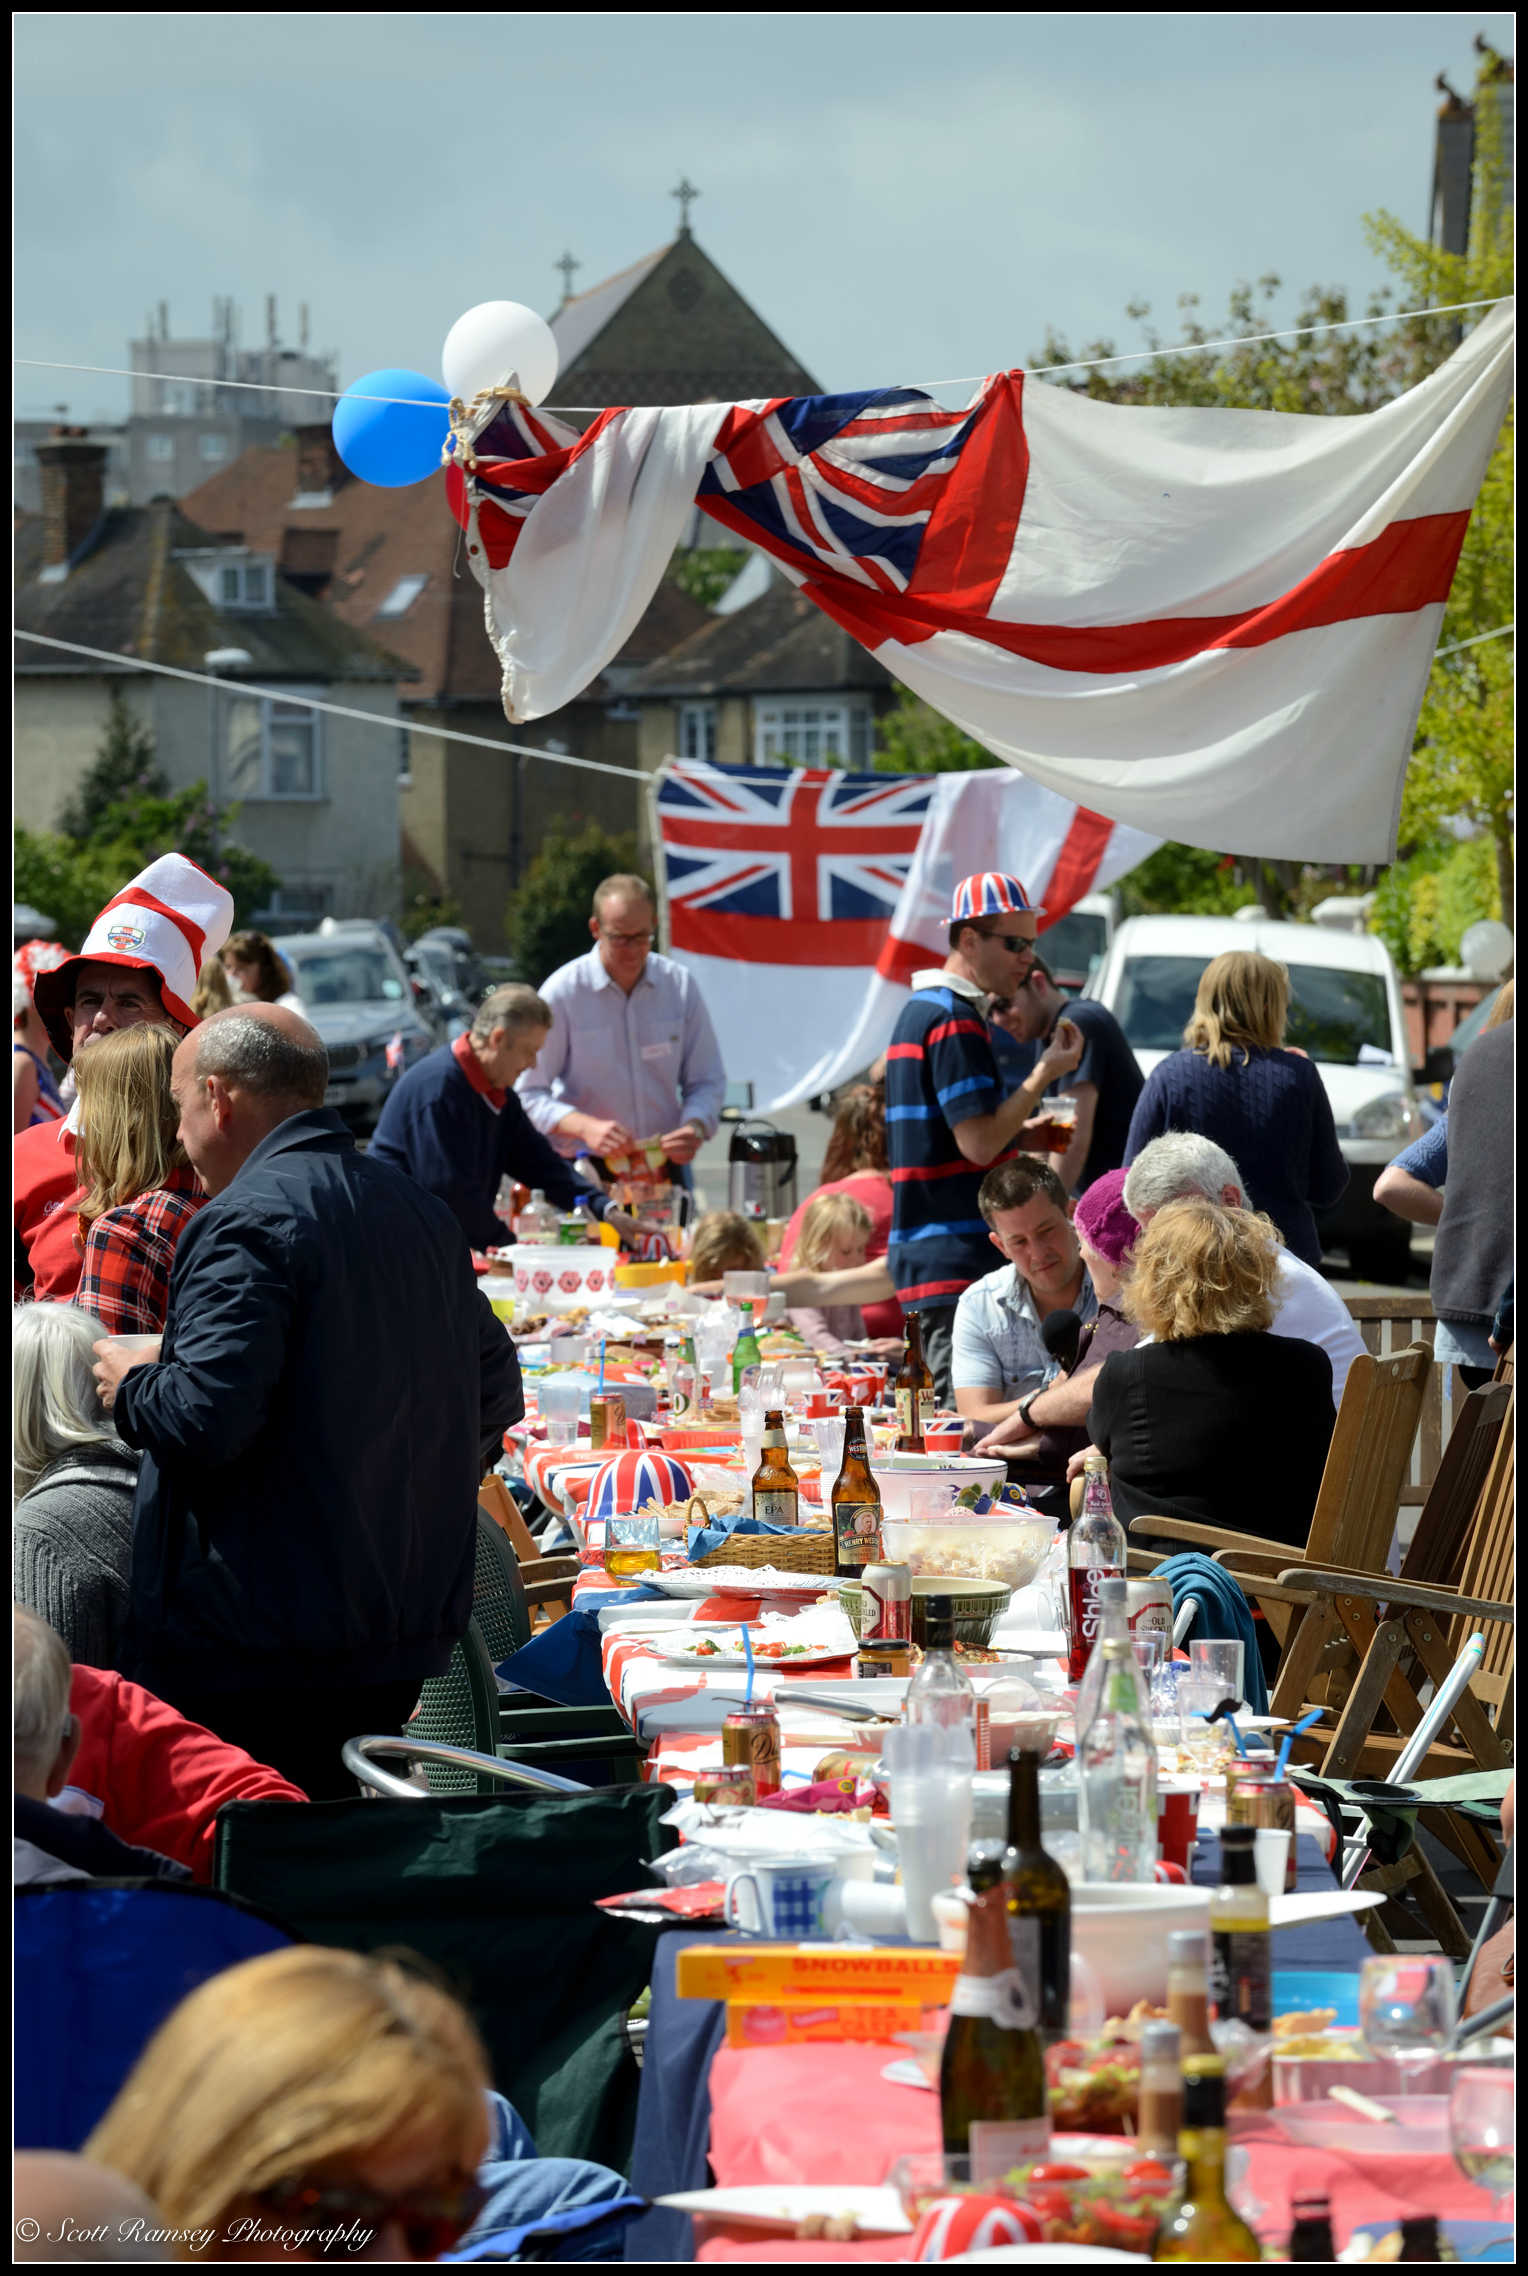 Residents celebrate the 70th anniversary of VE Day in Southsea, UK by holding a street party. © Scott Ramsey Photography.